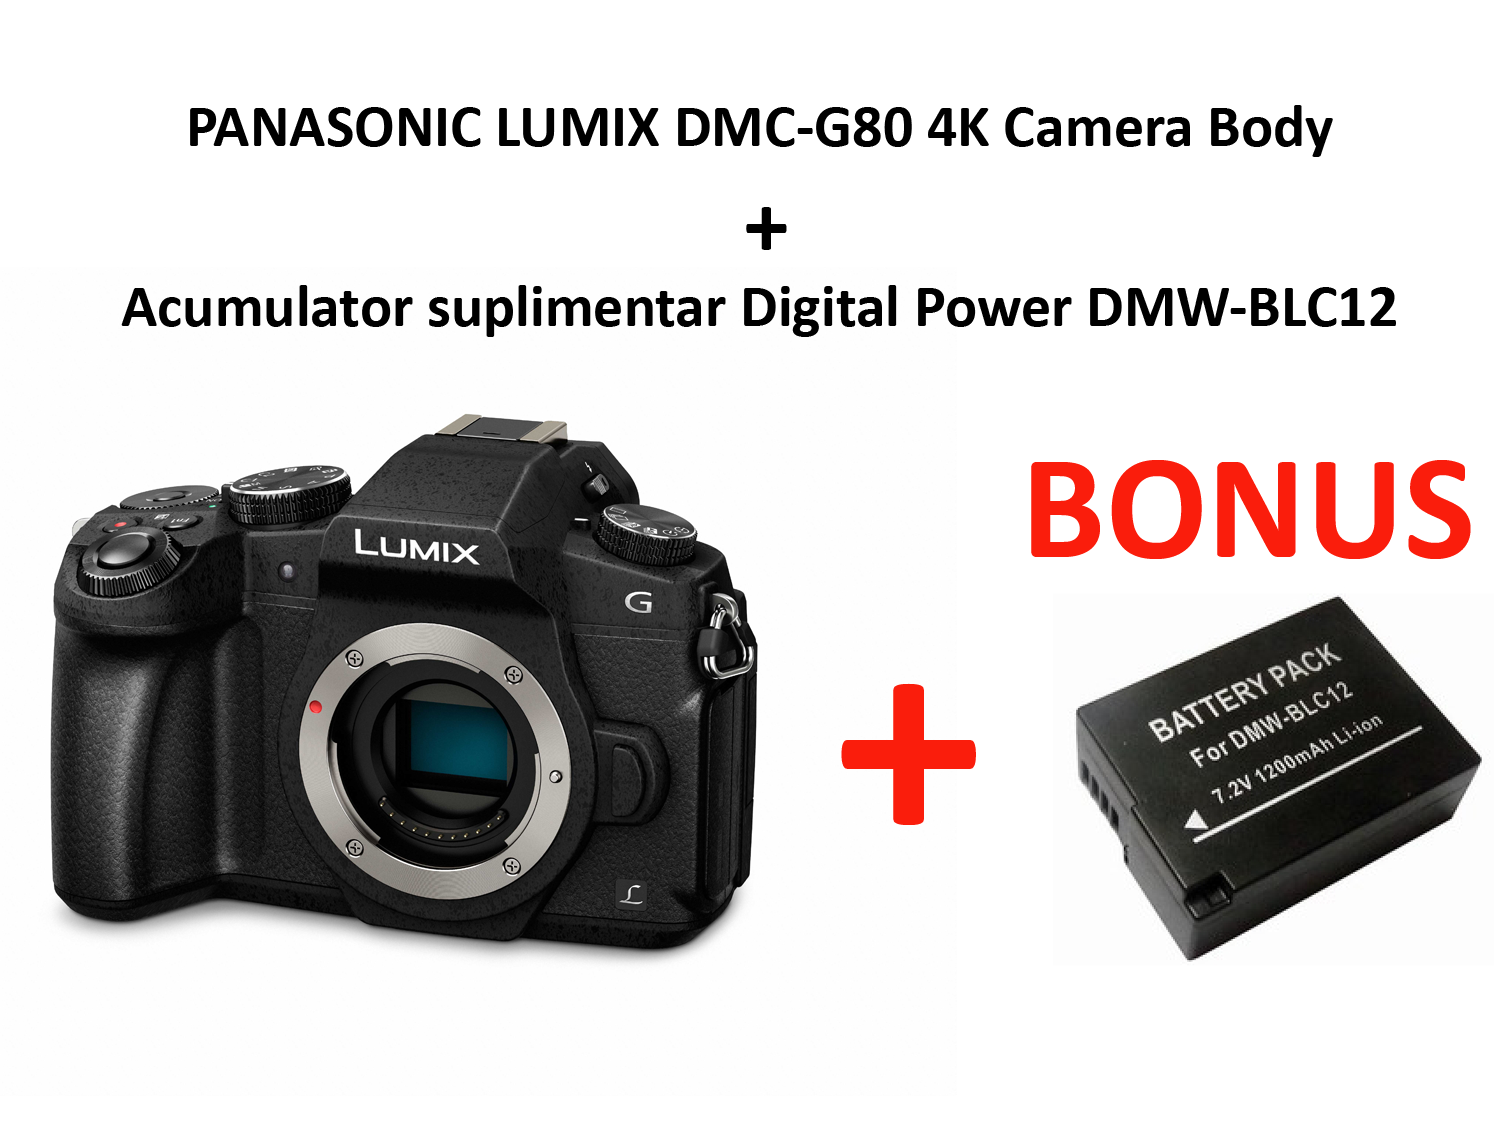 PANASONIC LUMIX DMC-G80 4K Camera Body